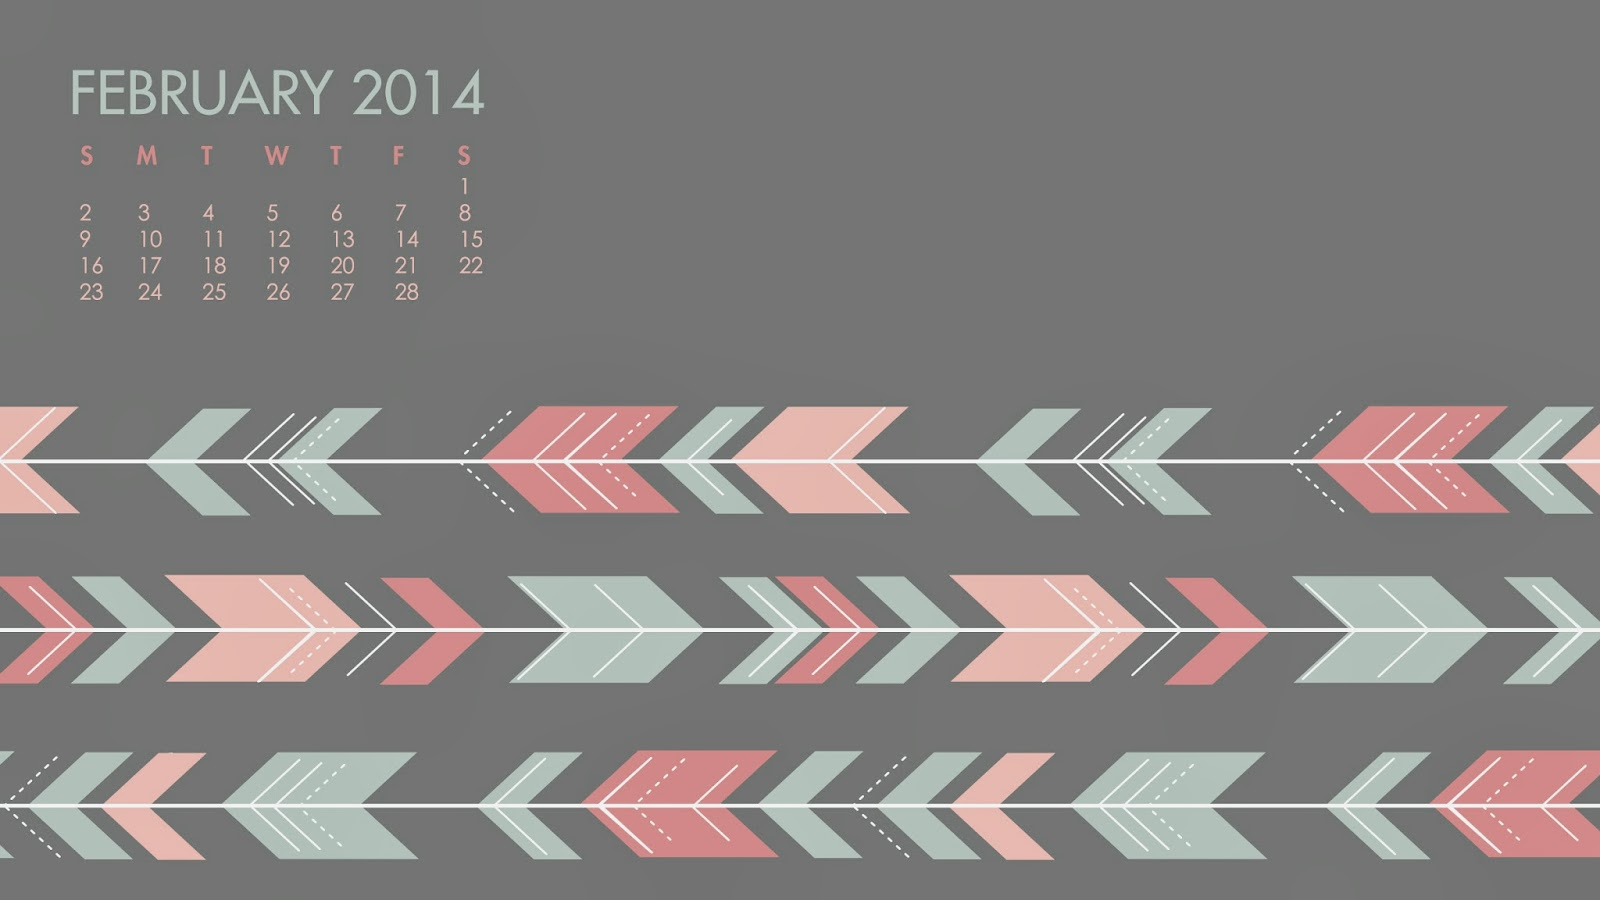 Seaonal March Calendars And Backgrounds Printable Calendar Template 1600x900